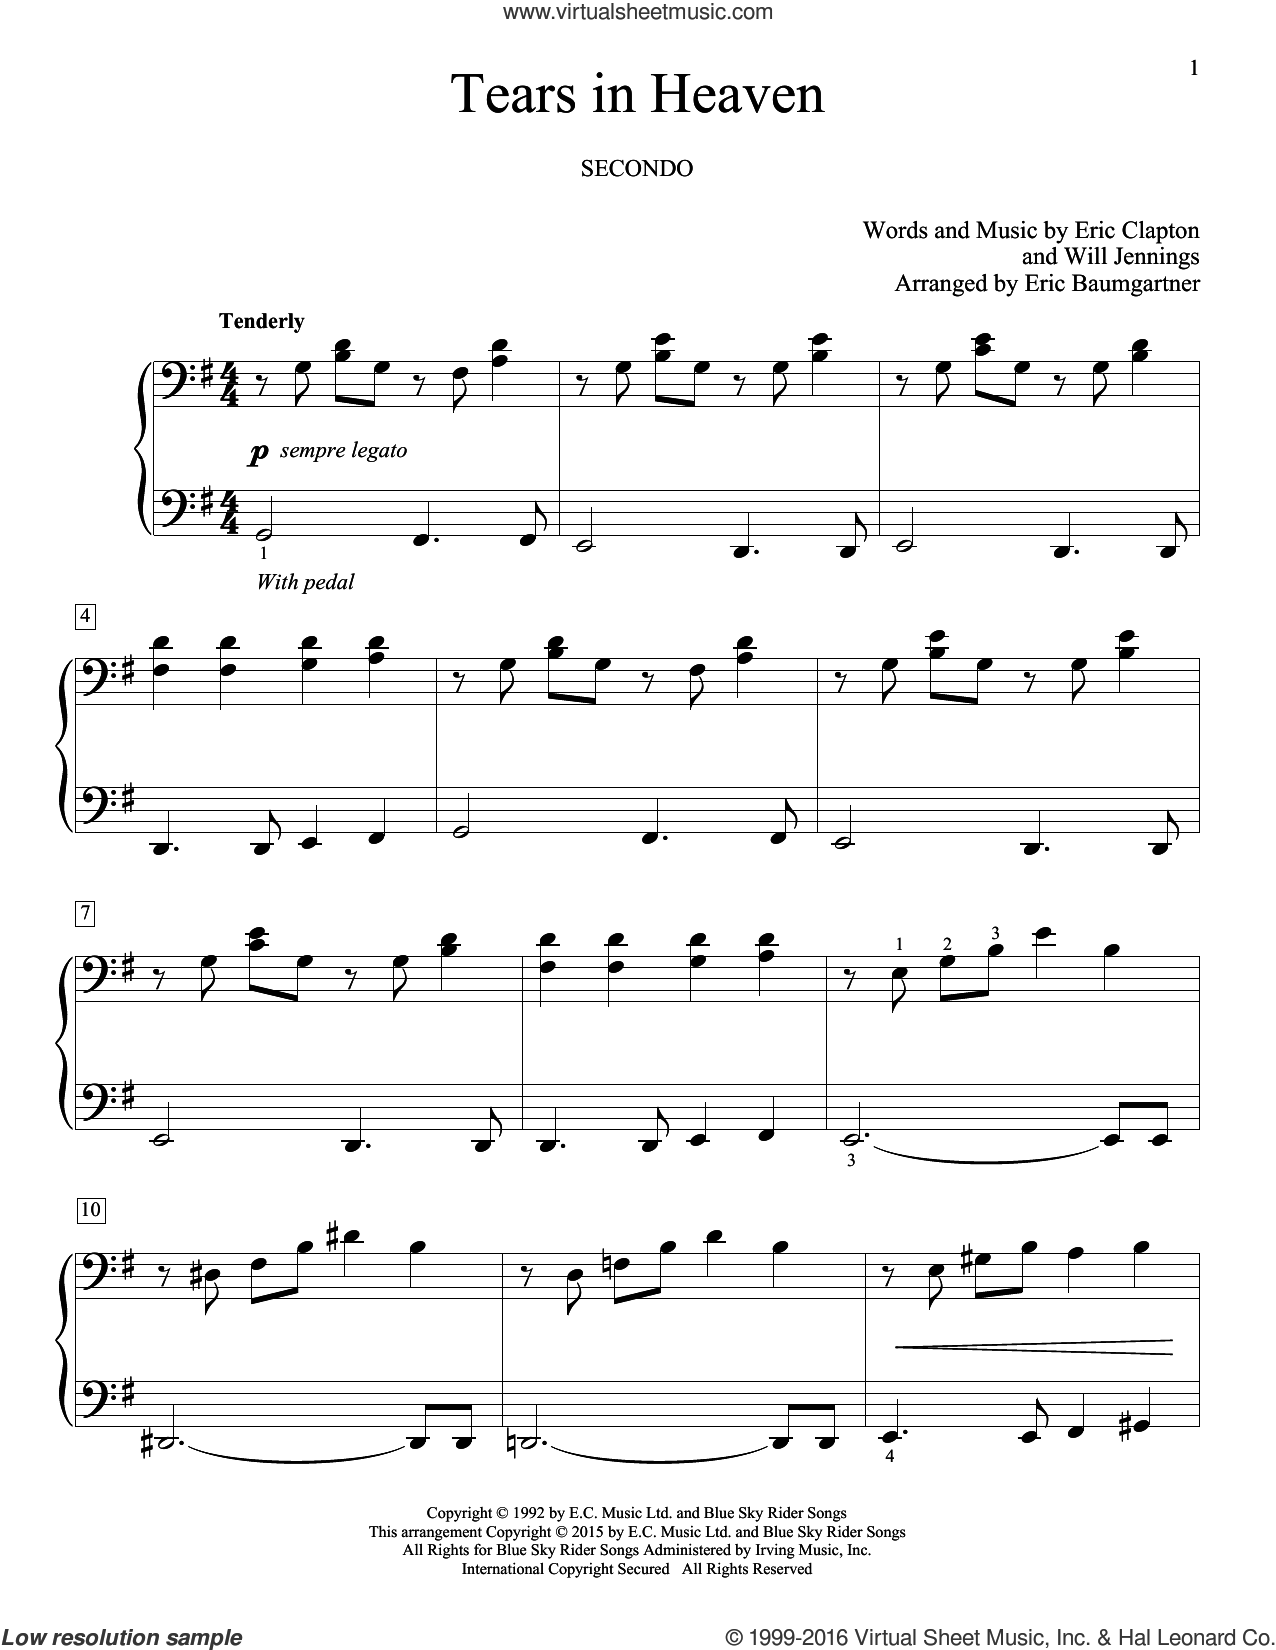 Tears In Heaven sheet music for piano four hands by Eric Clapton, Eric Baumgartner and Will Jennings, intermediate skill level